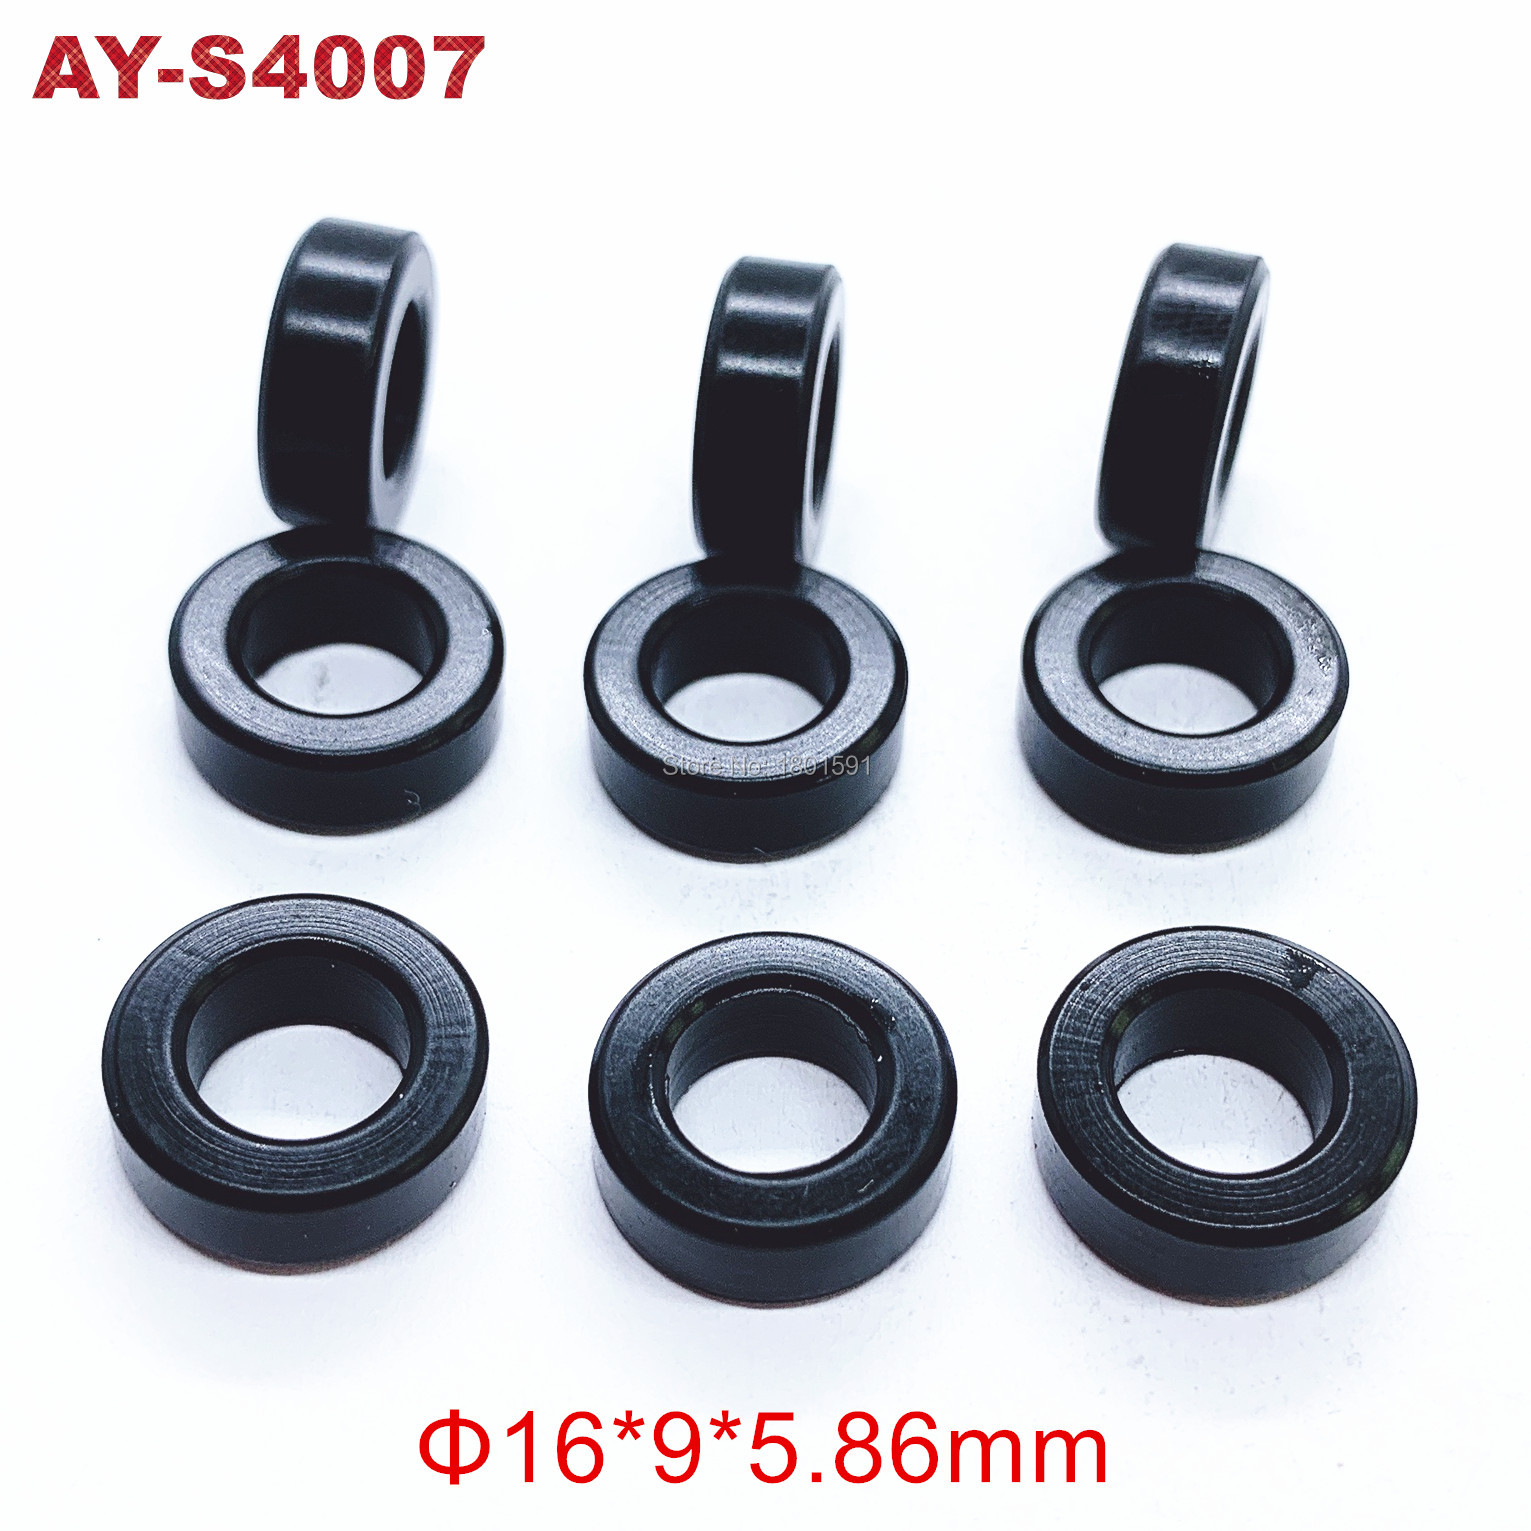 200pieces corrugated rubber seals oring 16*9*5.8mm for toyota fuel injector repair kits (AY-S4007)